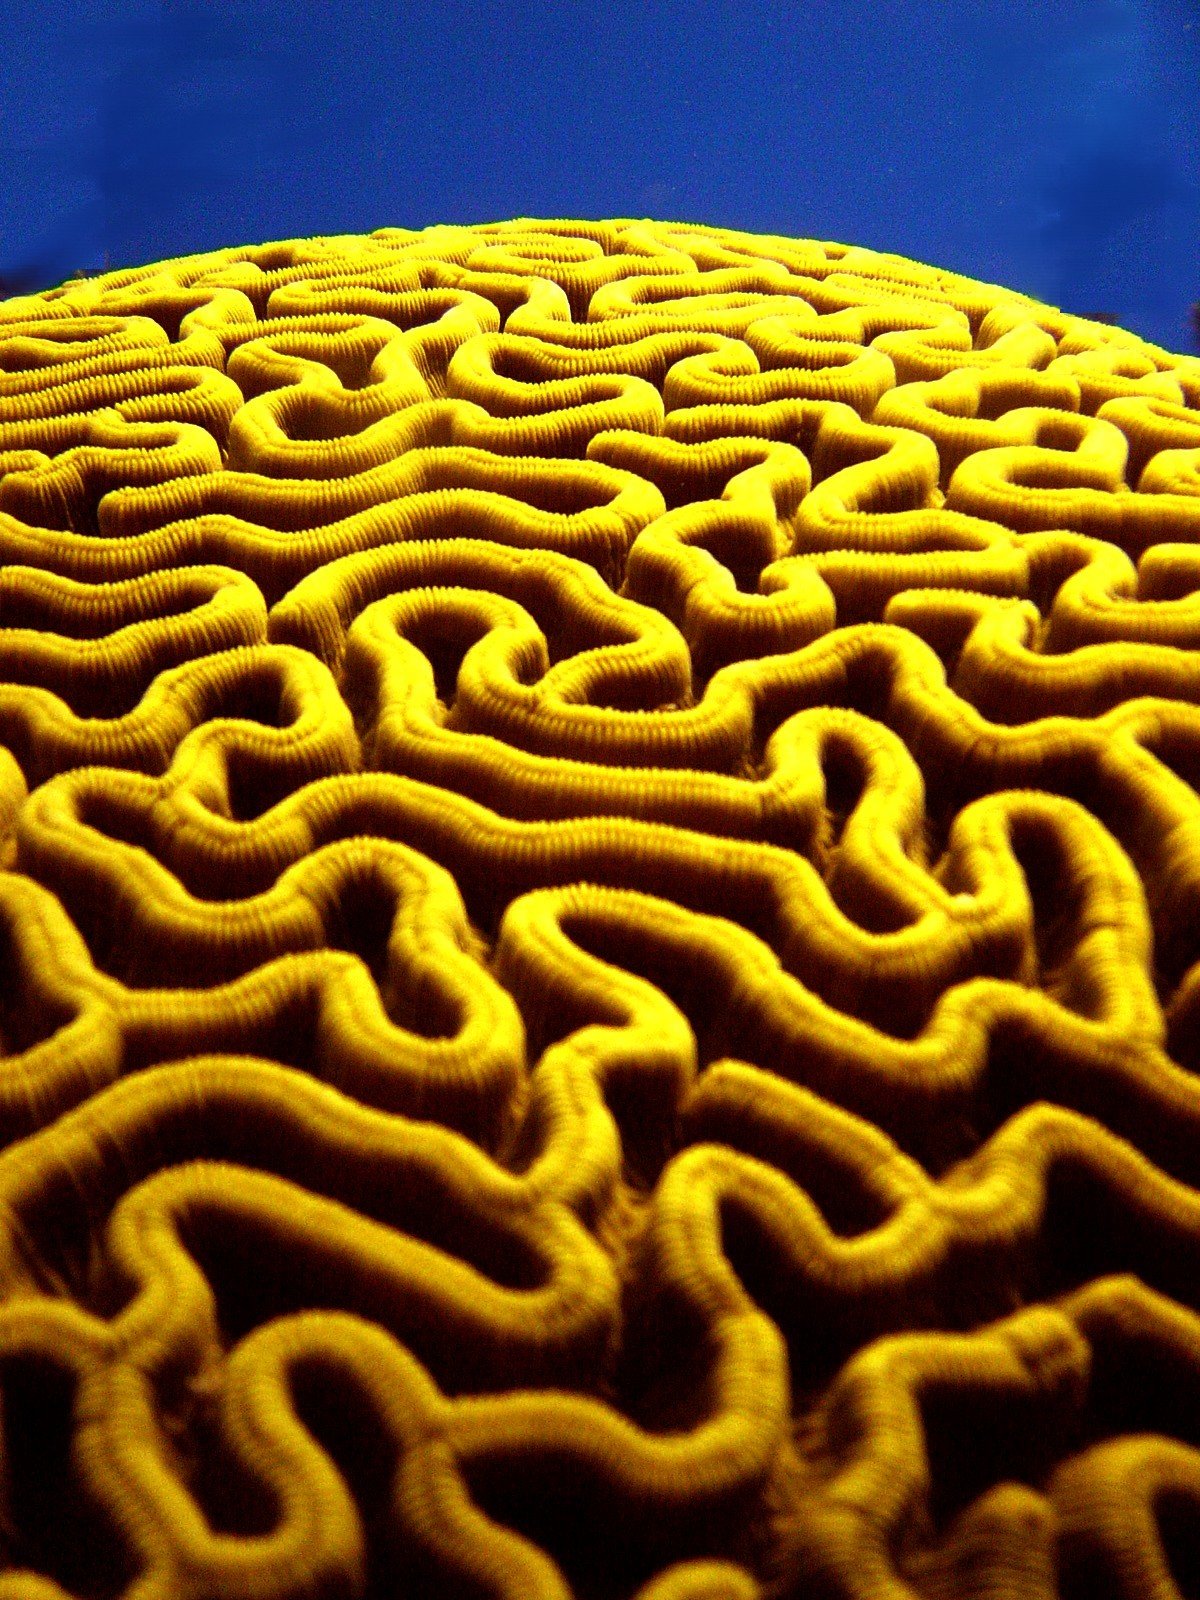 brain coral drawing - photo #17